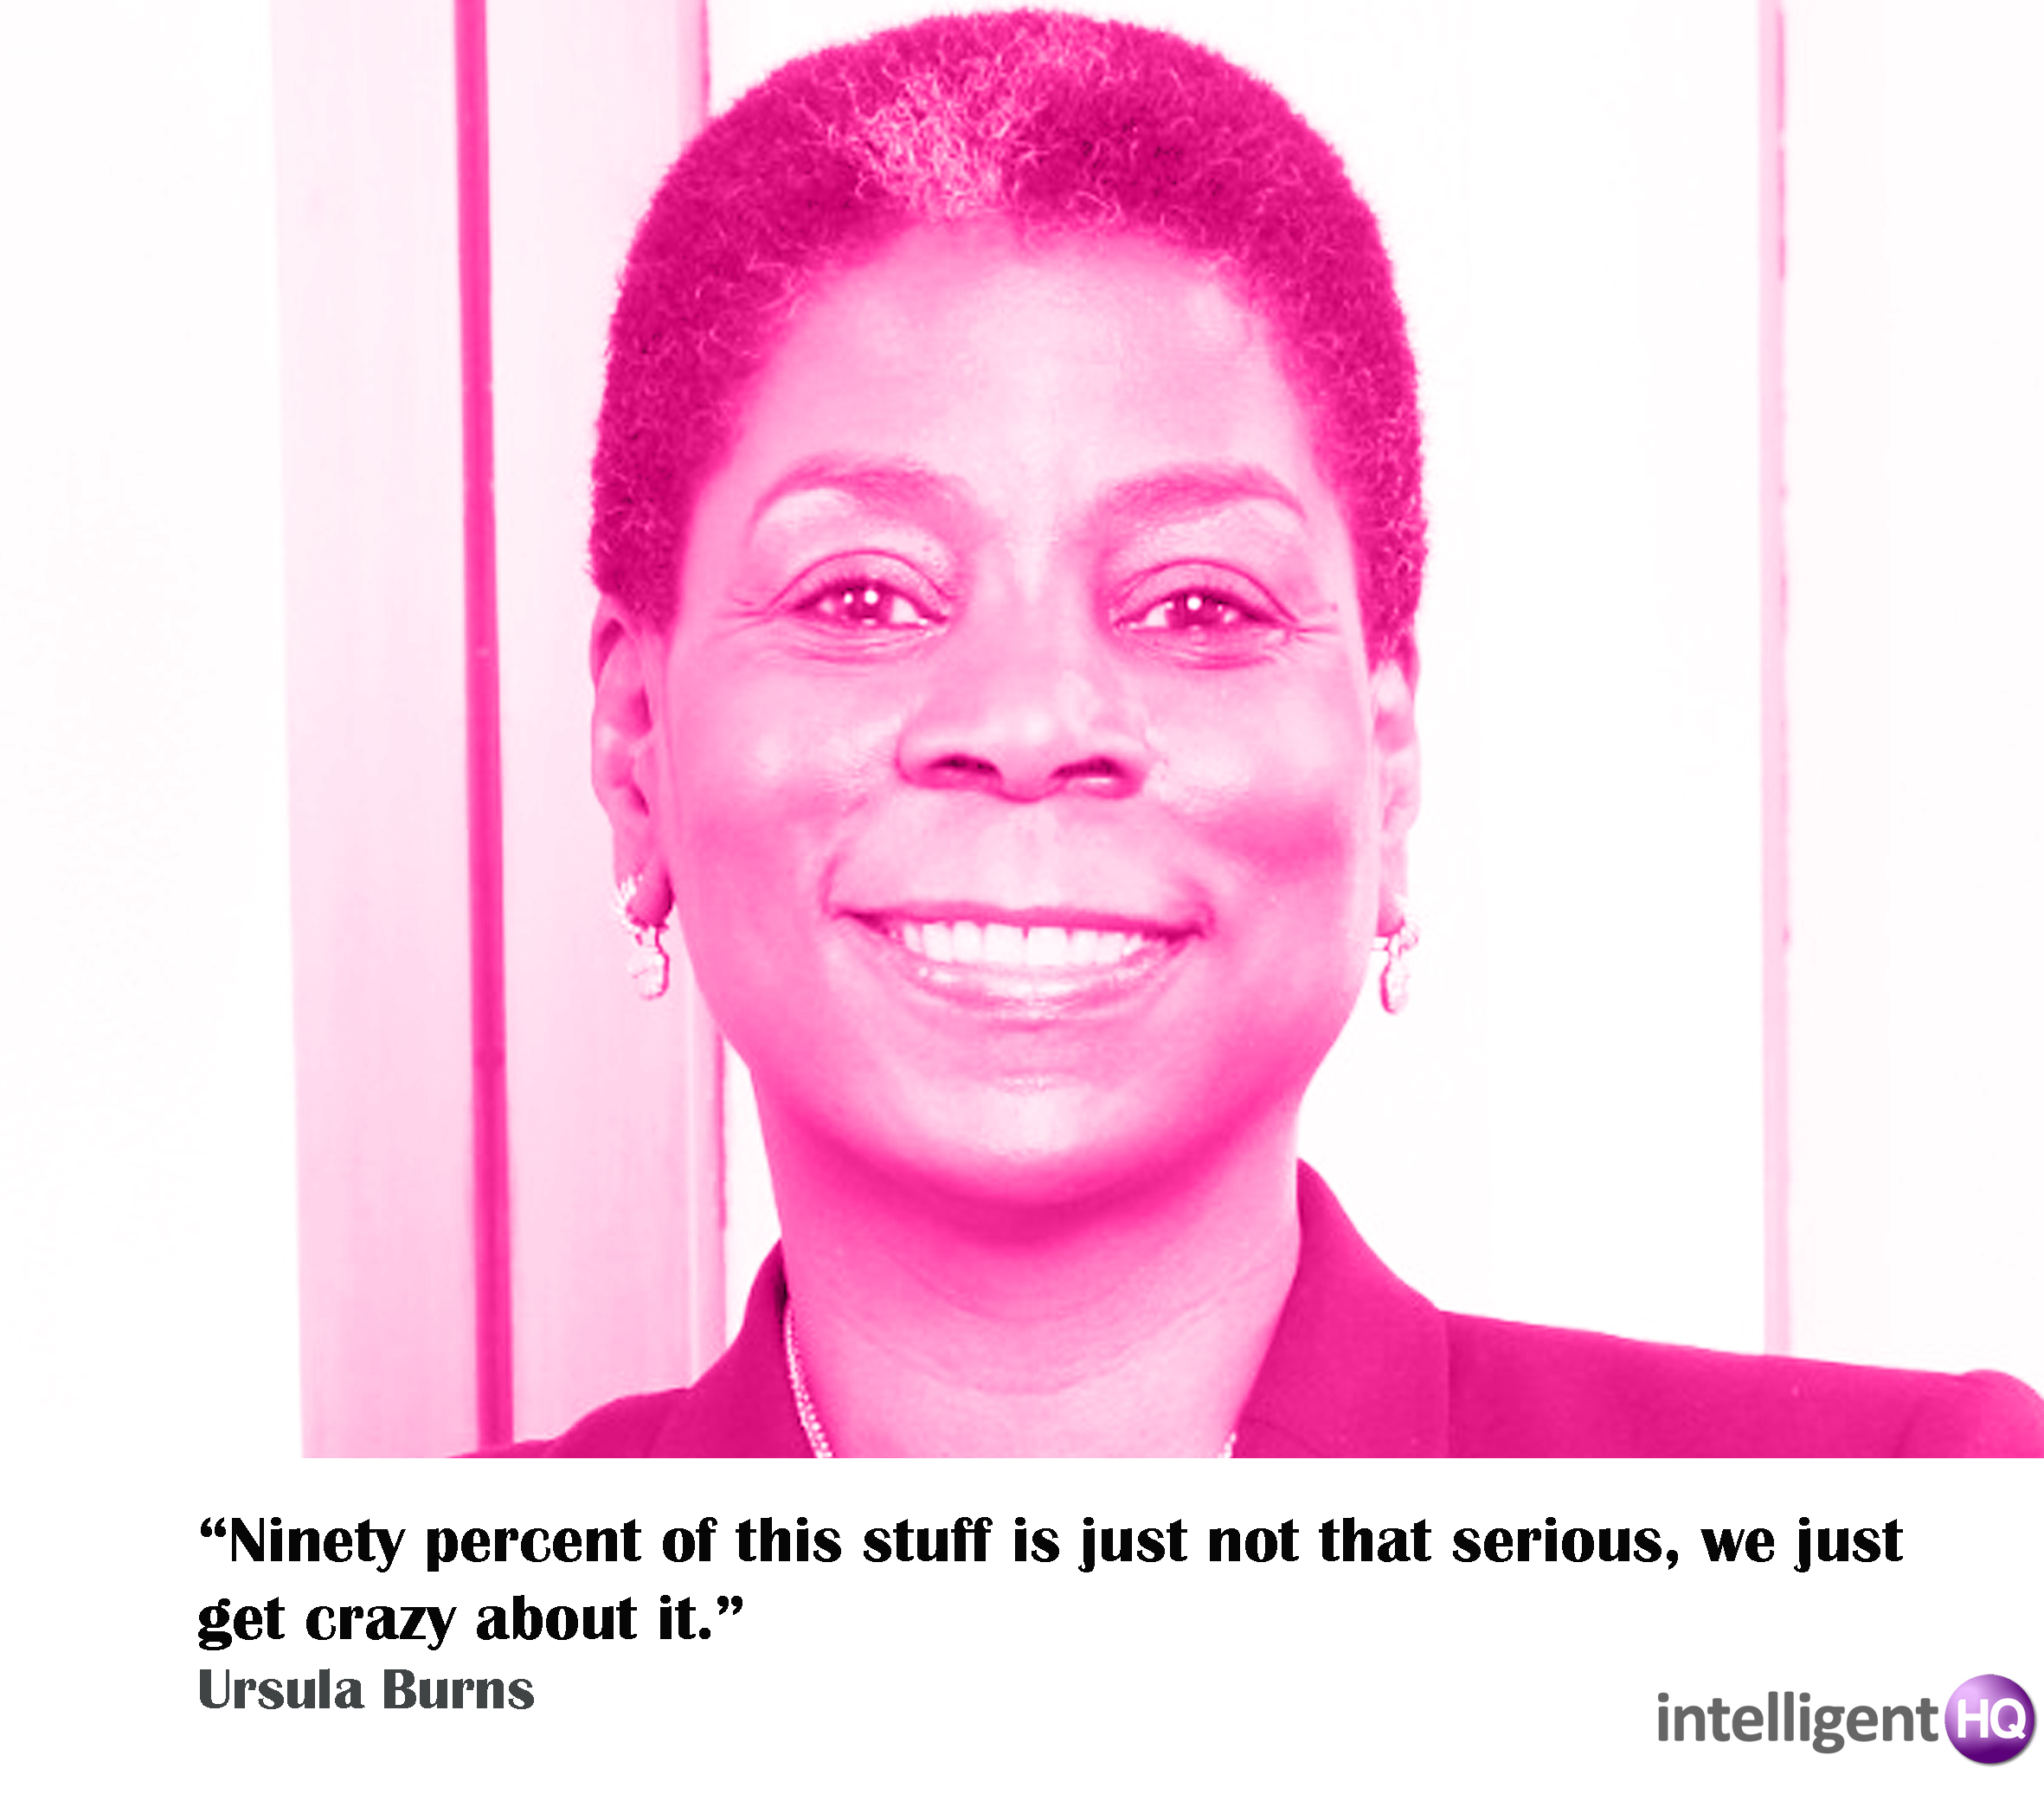 Quote By Ursula Burns. Intelligenthq